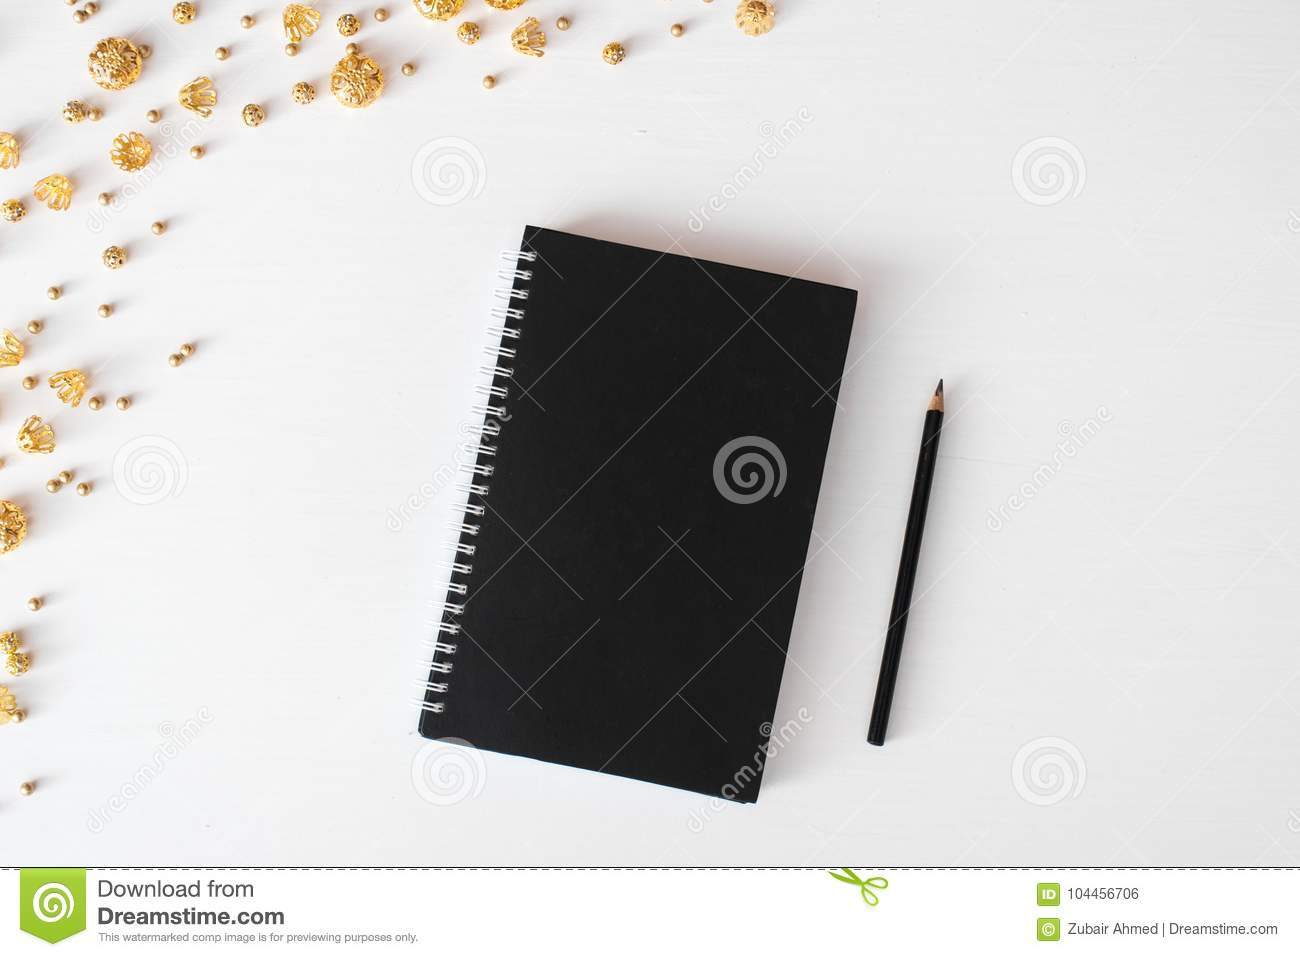 Diary Post Card Flyer Christmas Composition Wallpaper Decorations Ornaments On White Background Flat Lay Top View Stock Photo Image Of Notes Branding 104456706